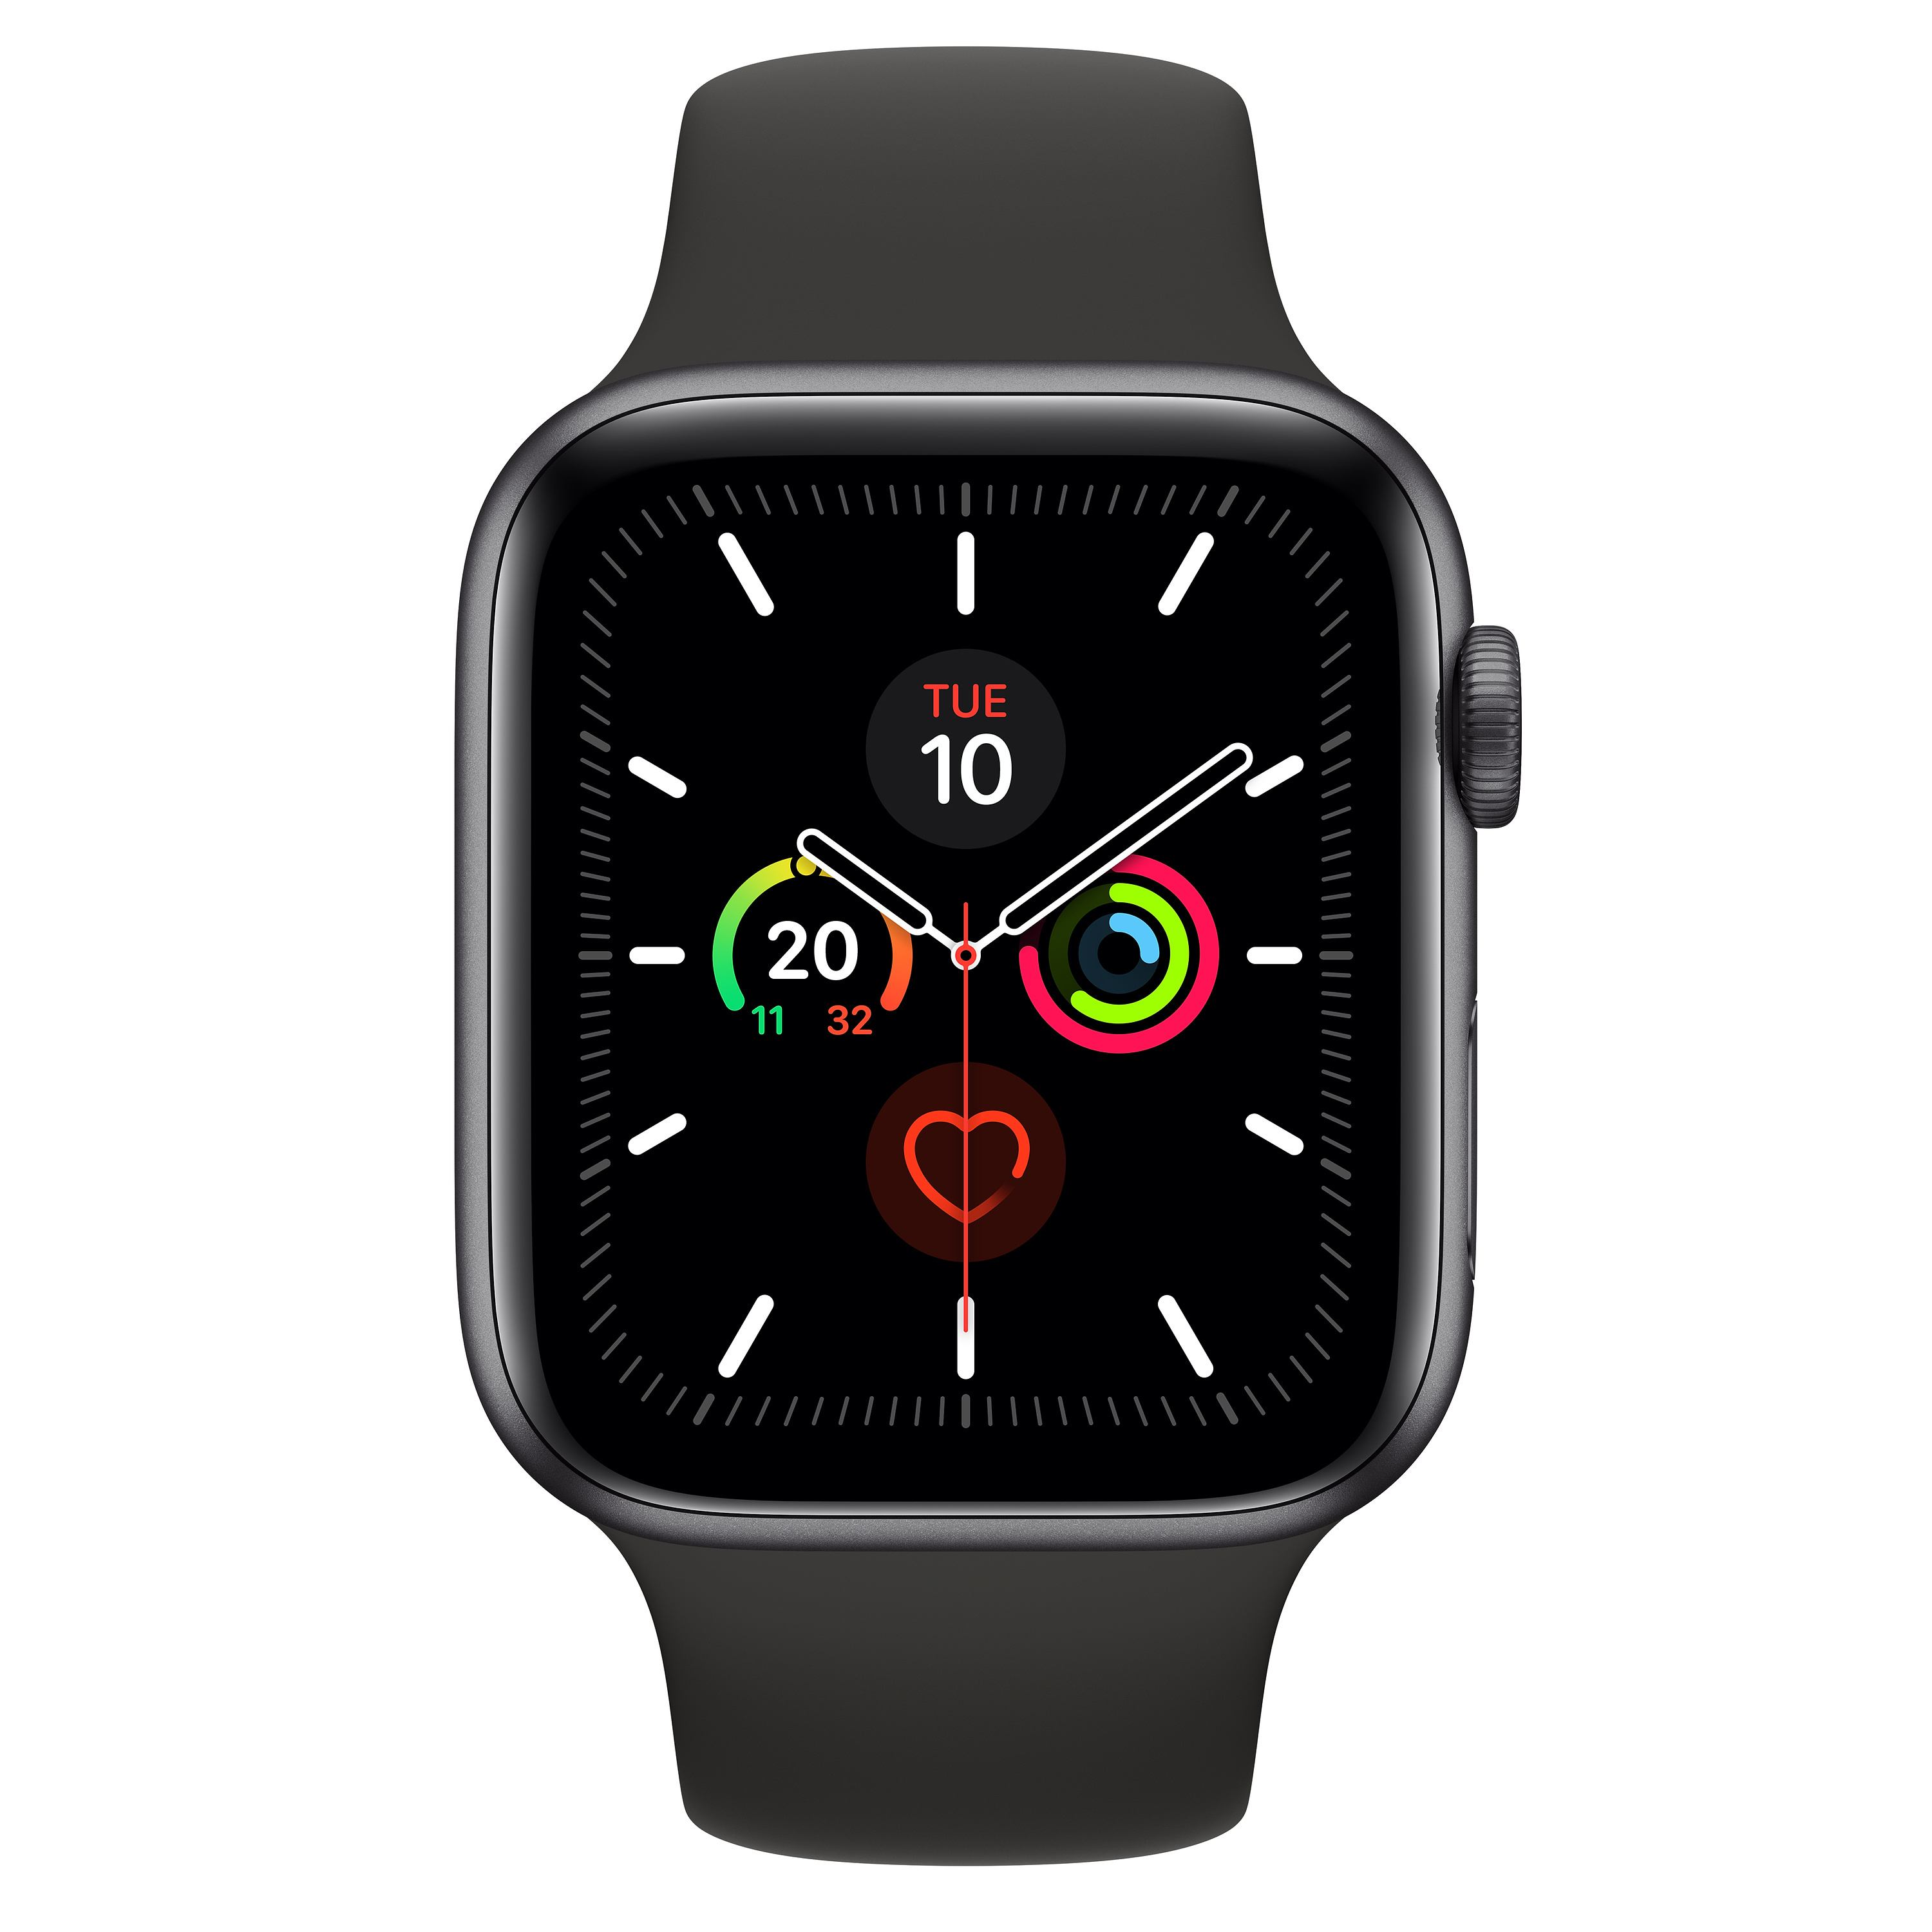 2465436-Apple-Watch-Series-5-smartwatch-Grigio-OLED-Cellulare-GPS-satellitare